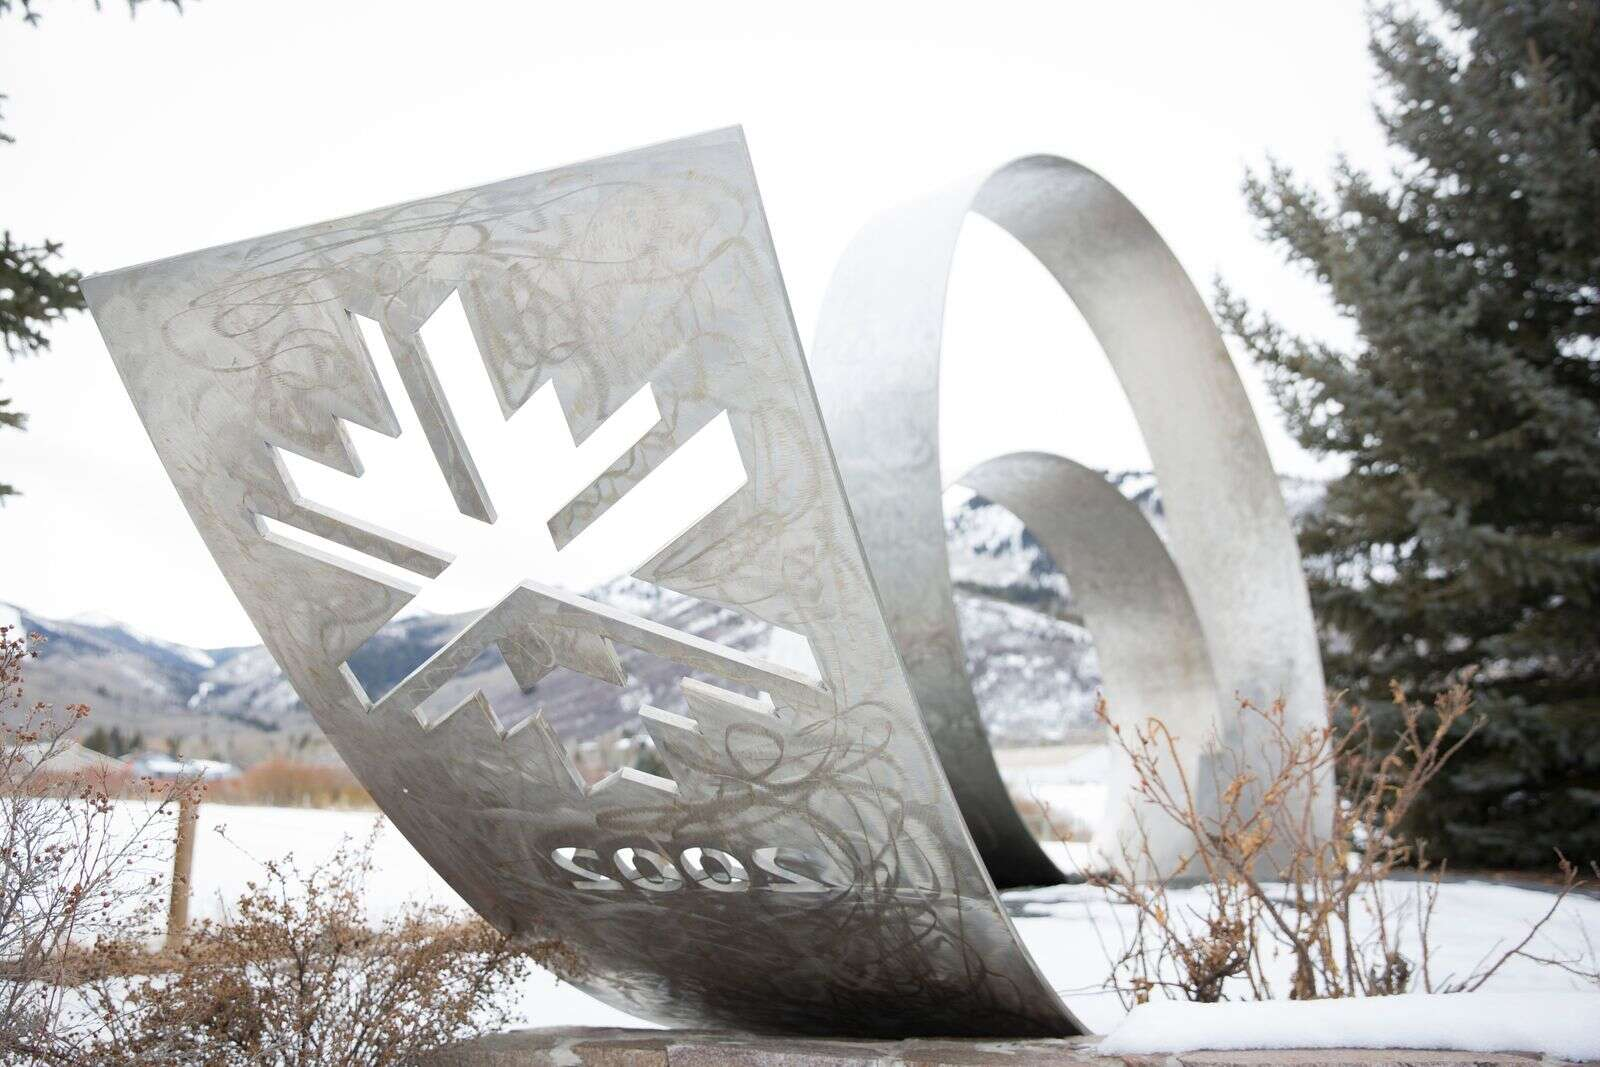 Park City sees possibility of tapping Olympic-related monies for major transportation upgrades